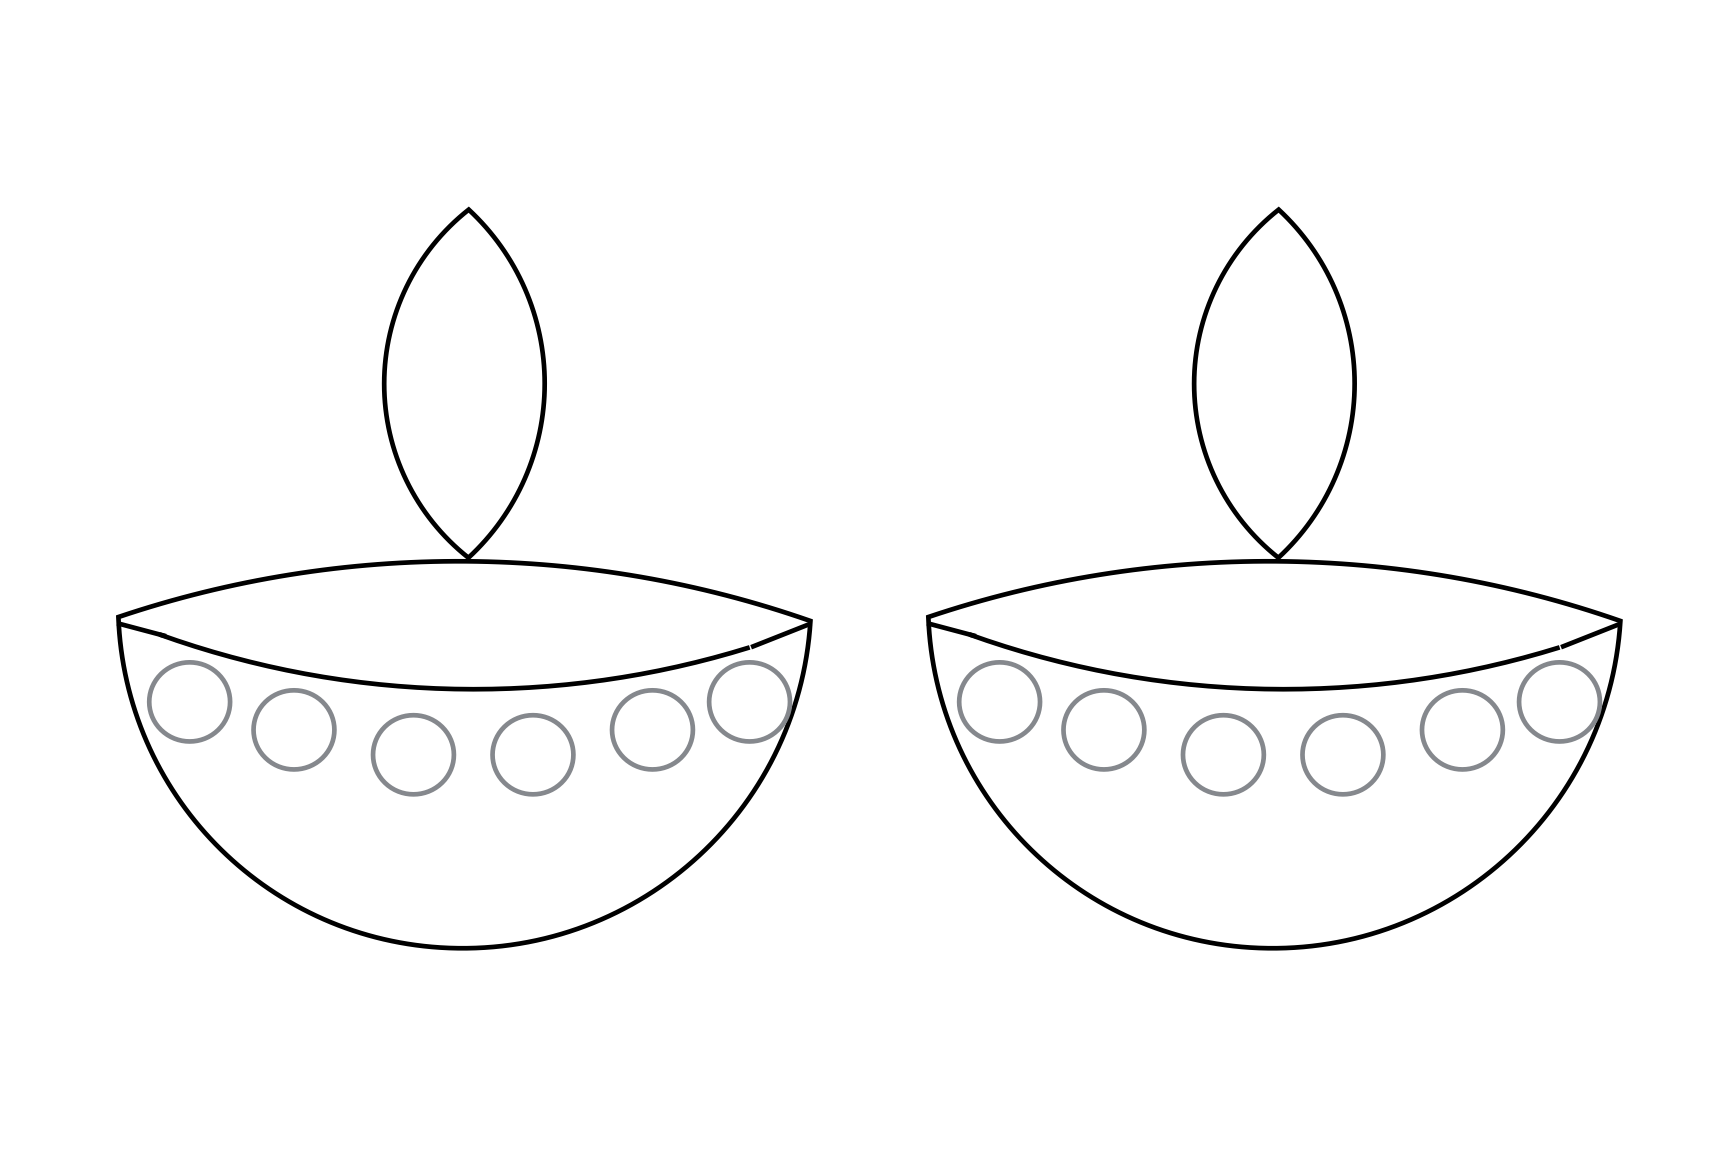 diwali outline pictures diwali clipart free download clip art free clip art pictures outline diwali